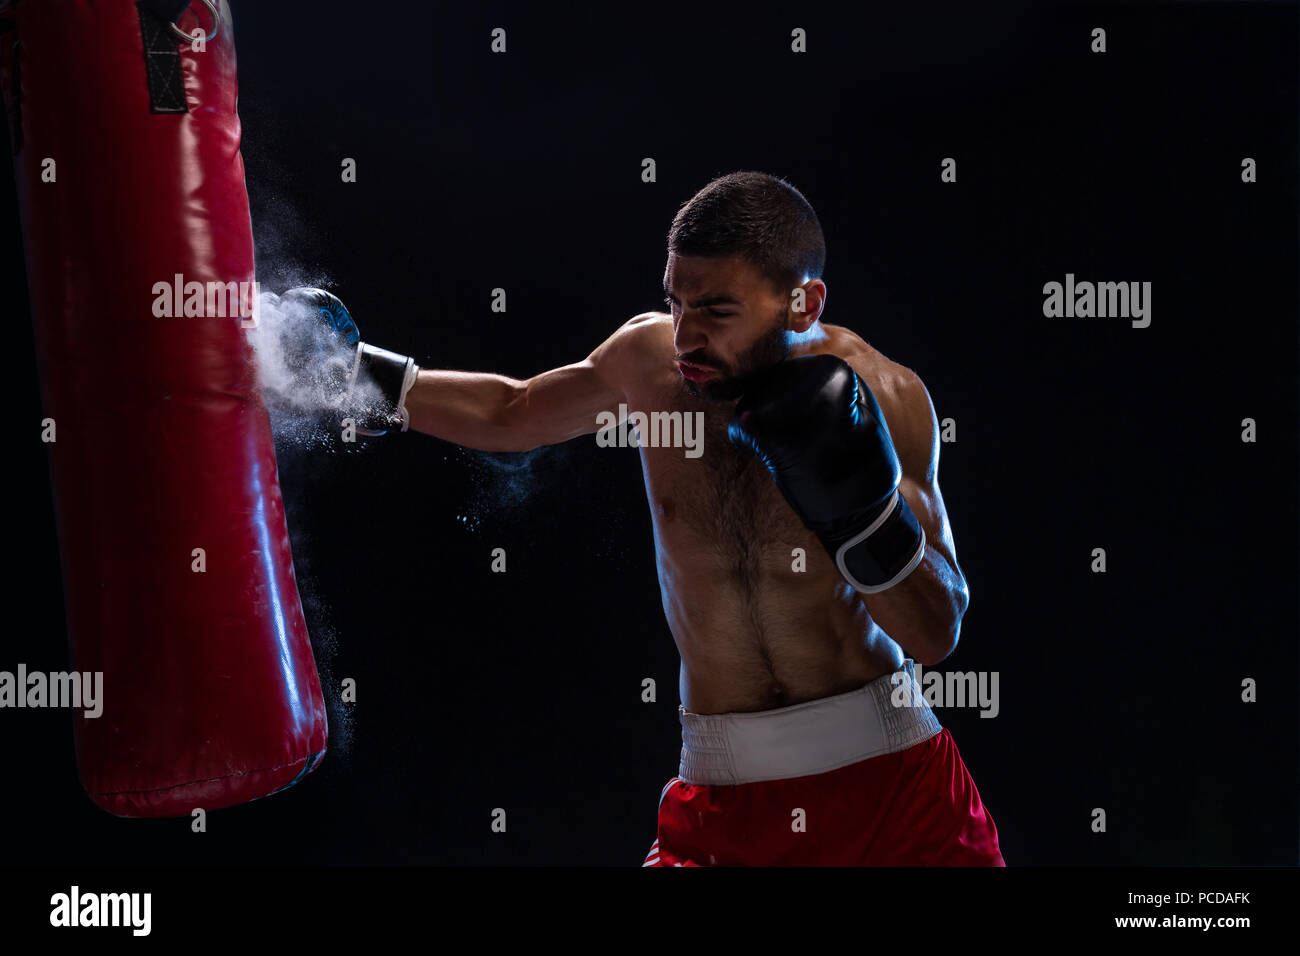 Muscular handsome boxer giving a forceful forward kick during a practise round with a boxing bag. Studio shot on a black background - Stock Image